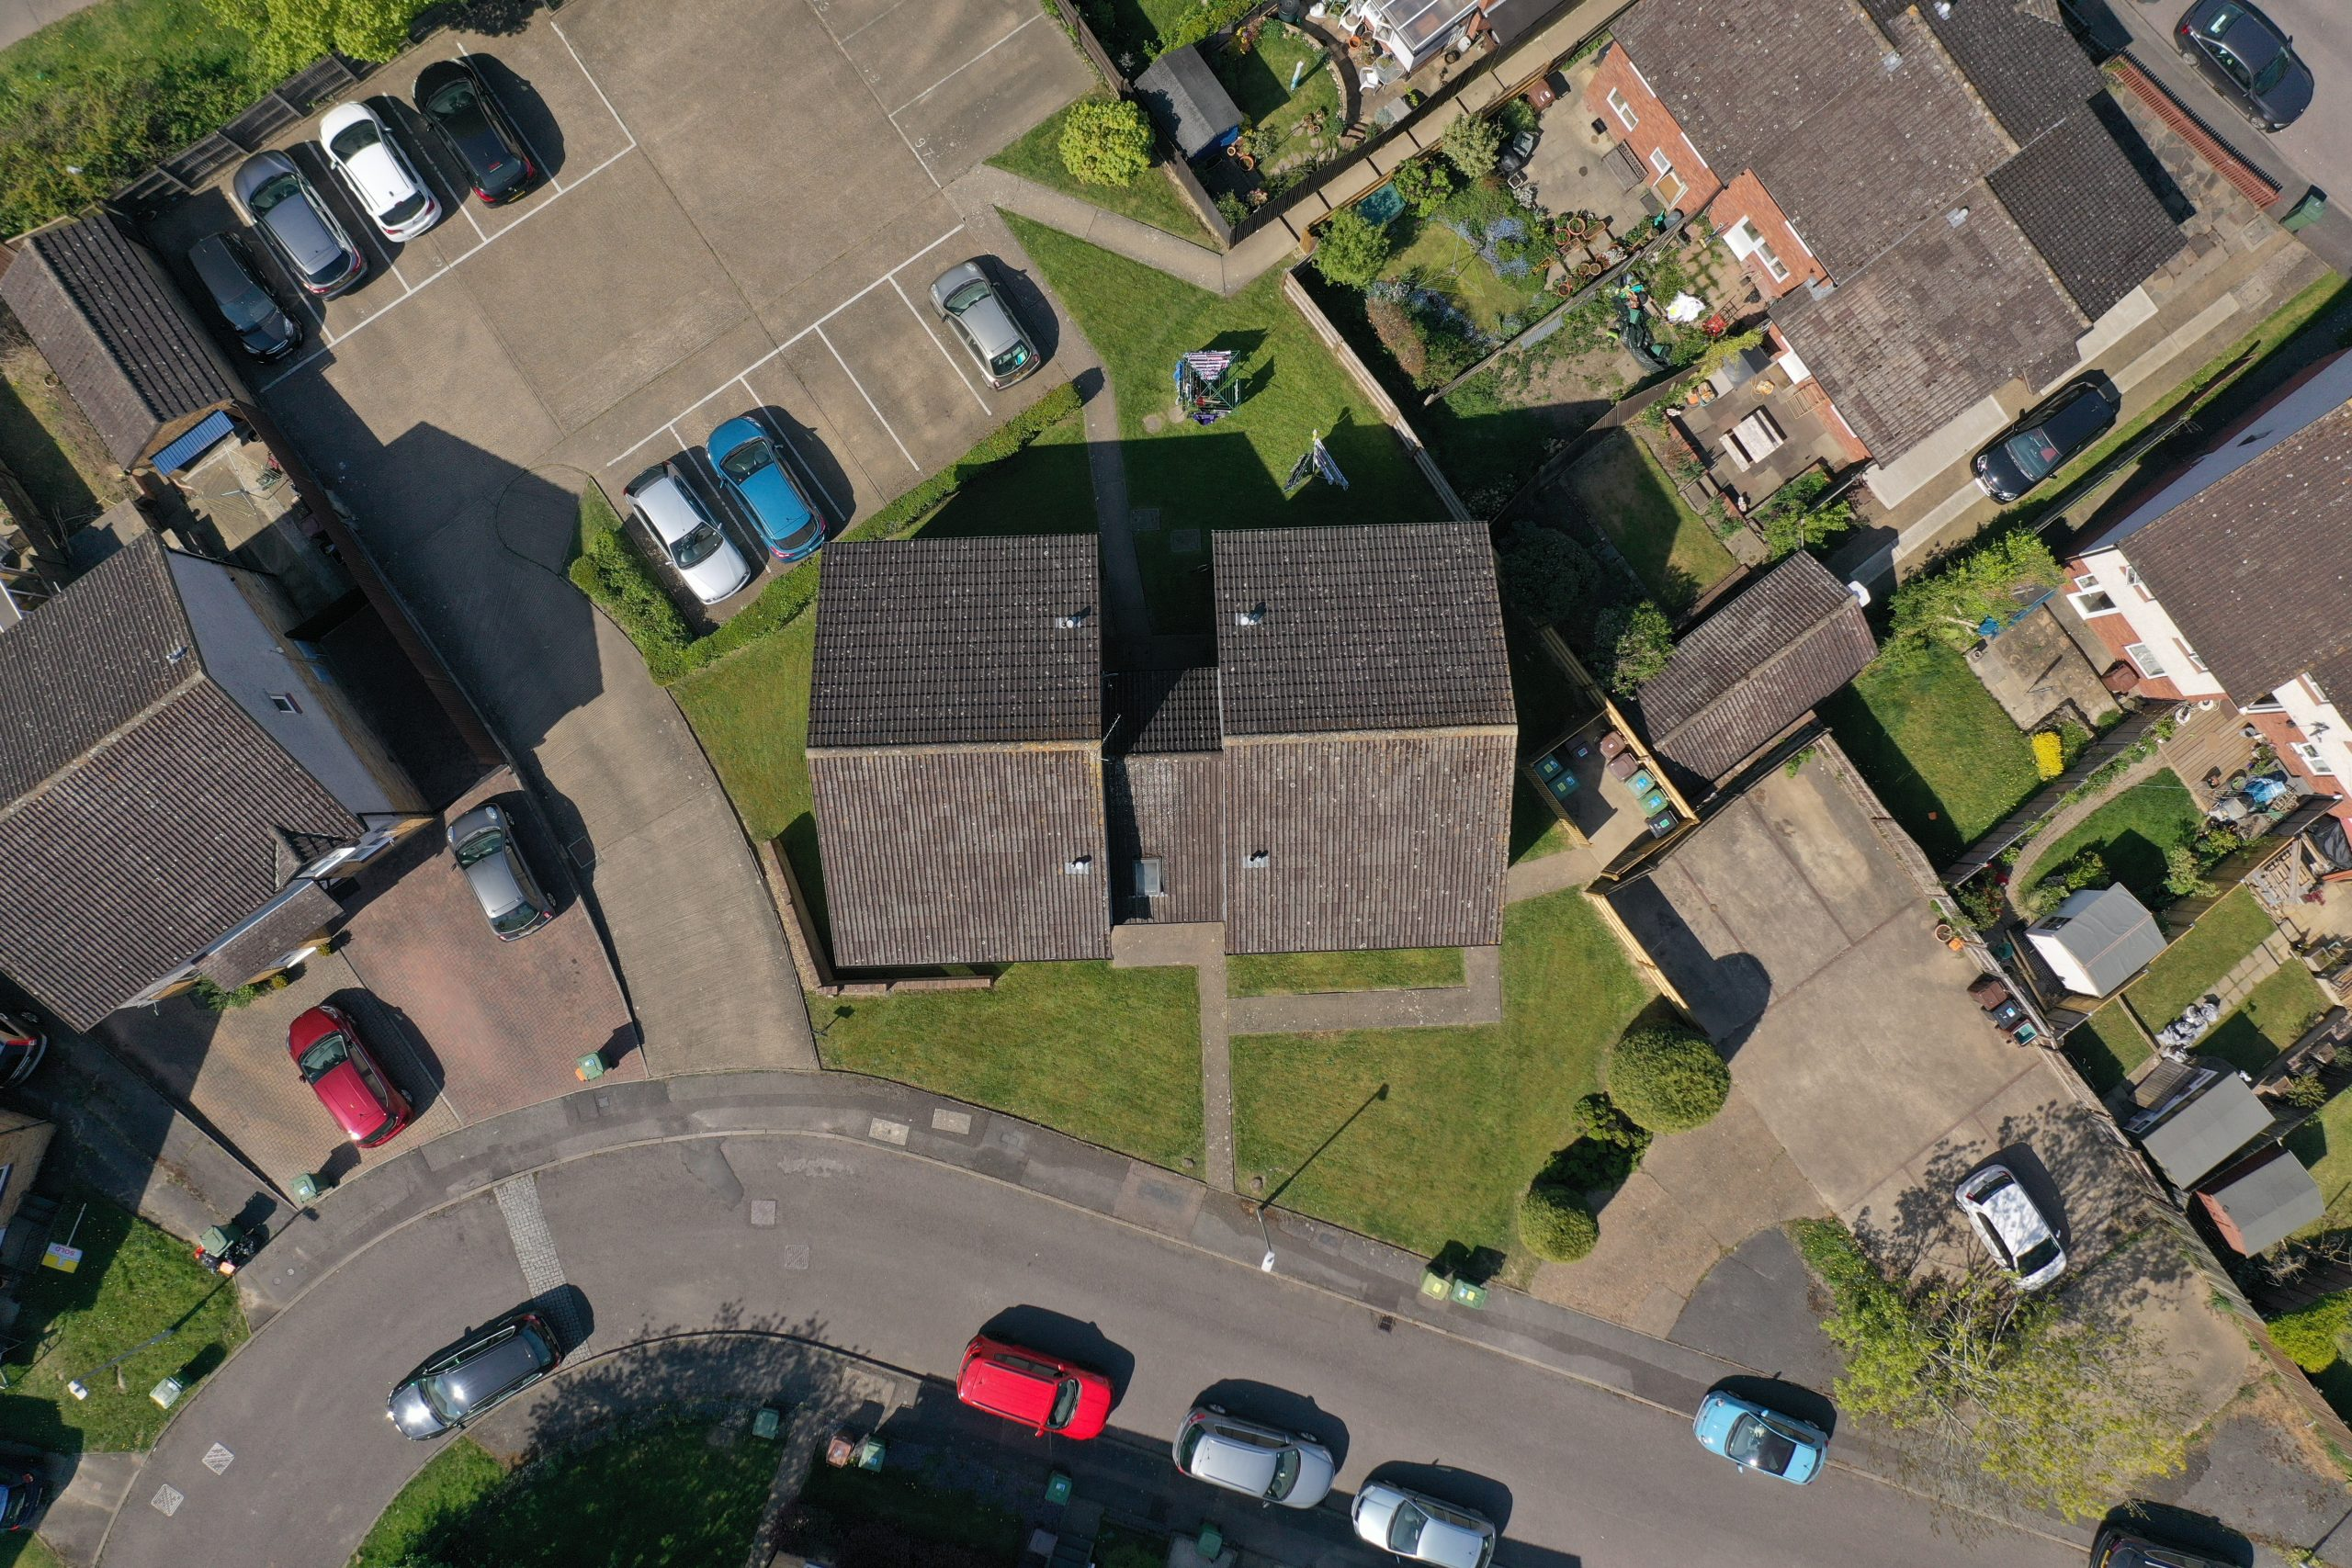 Residential Property Aerial